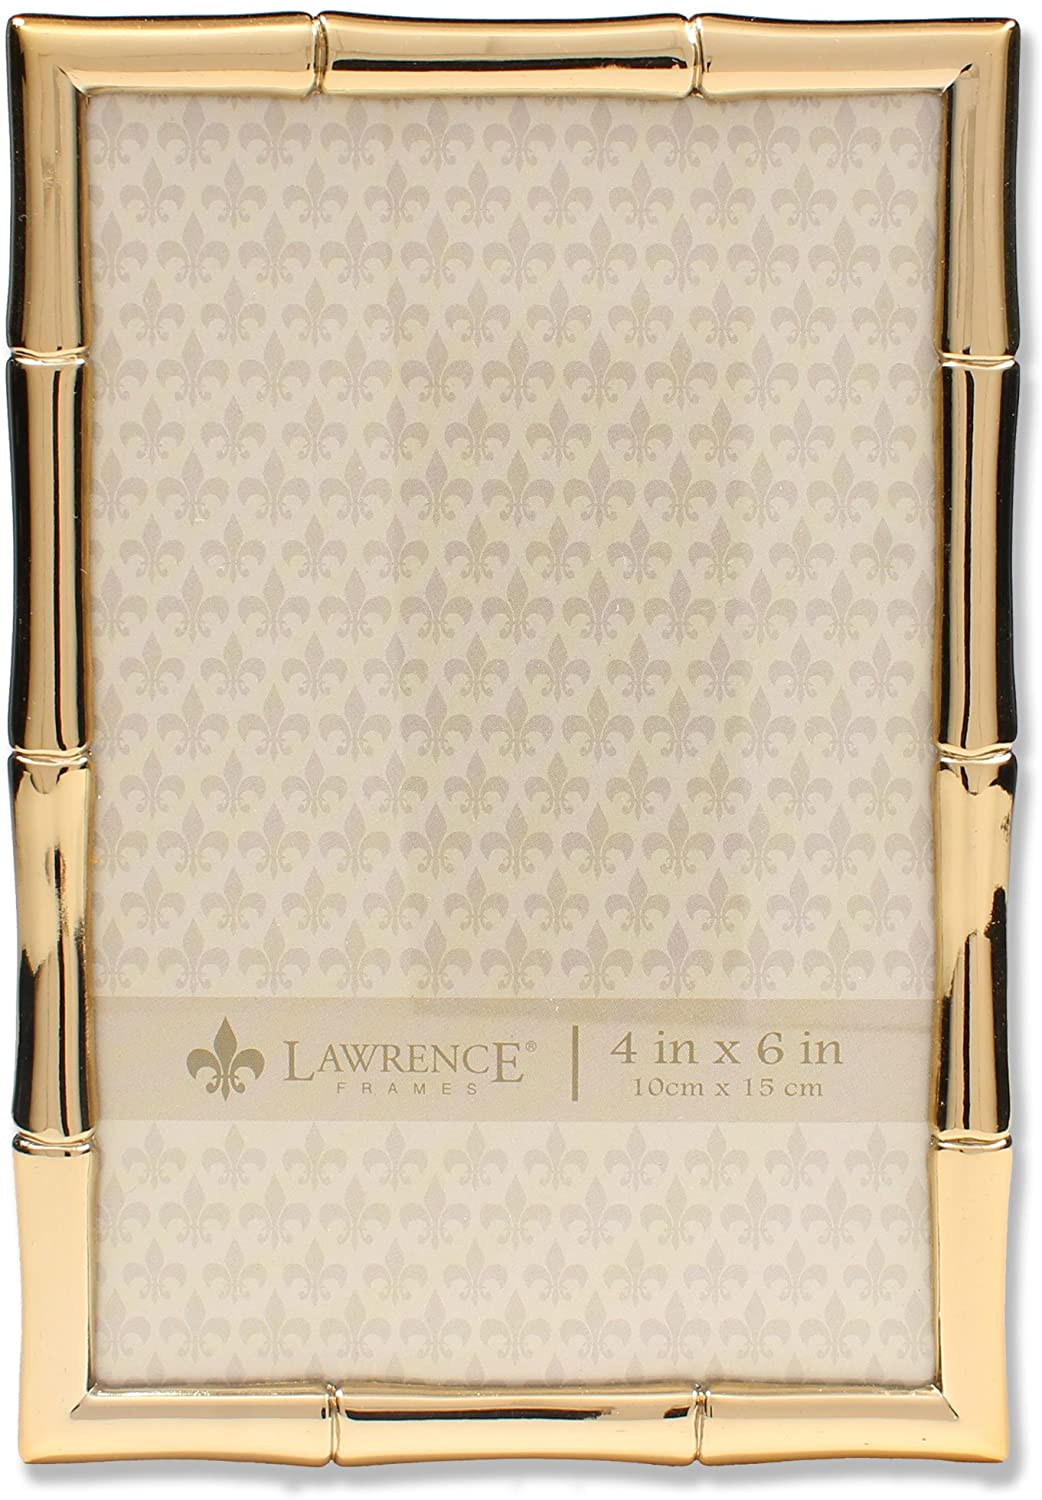 Lawrence Frames 4x6 Gold Metal Bamboo Design Picture Frame